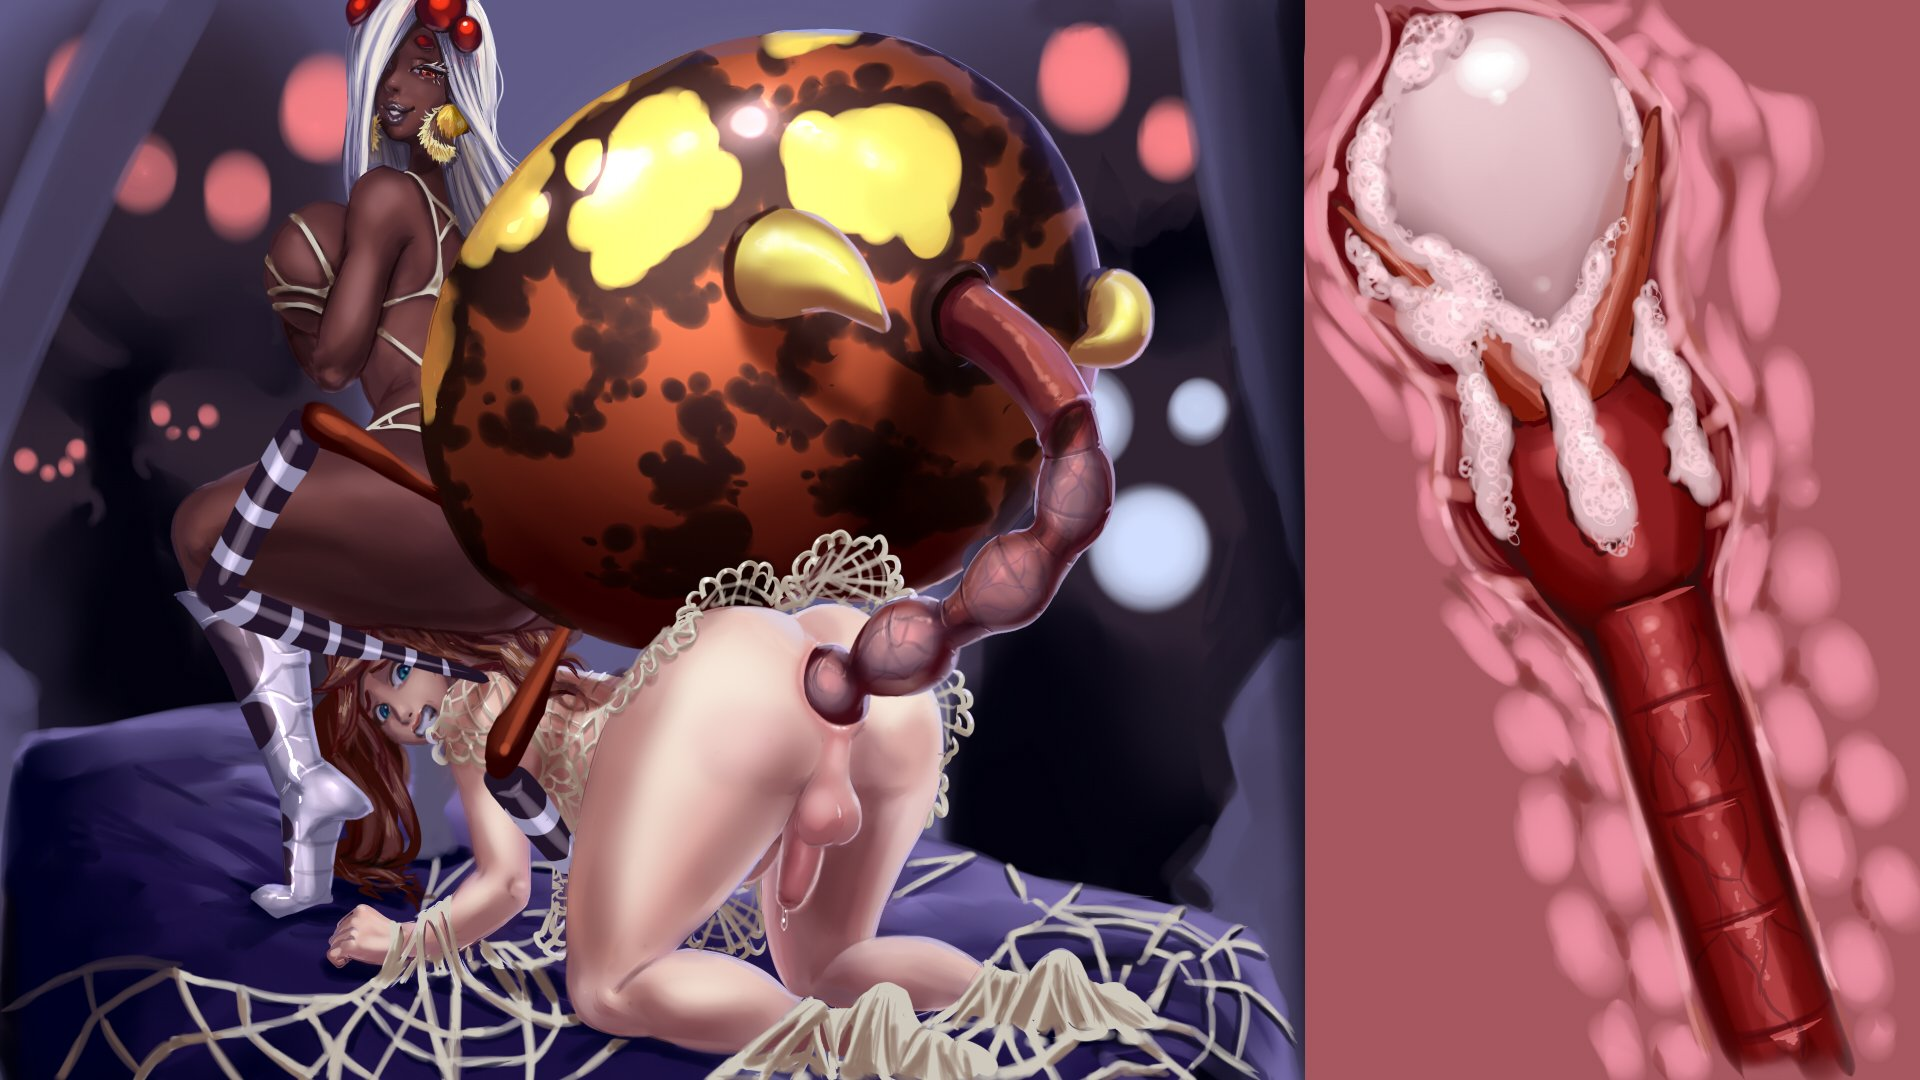 Egg insertion porn male furry tentacle porn rule anal sex anthro anus balls big